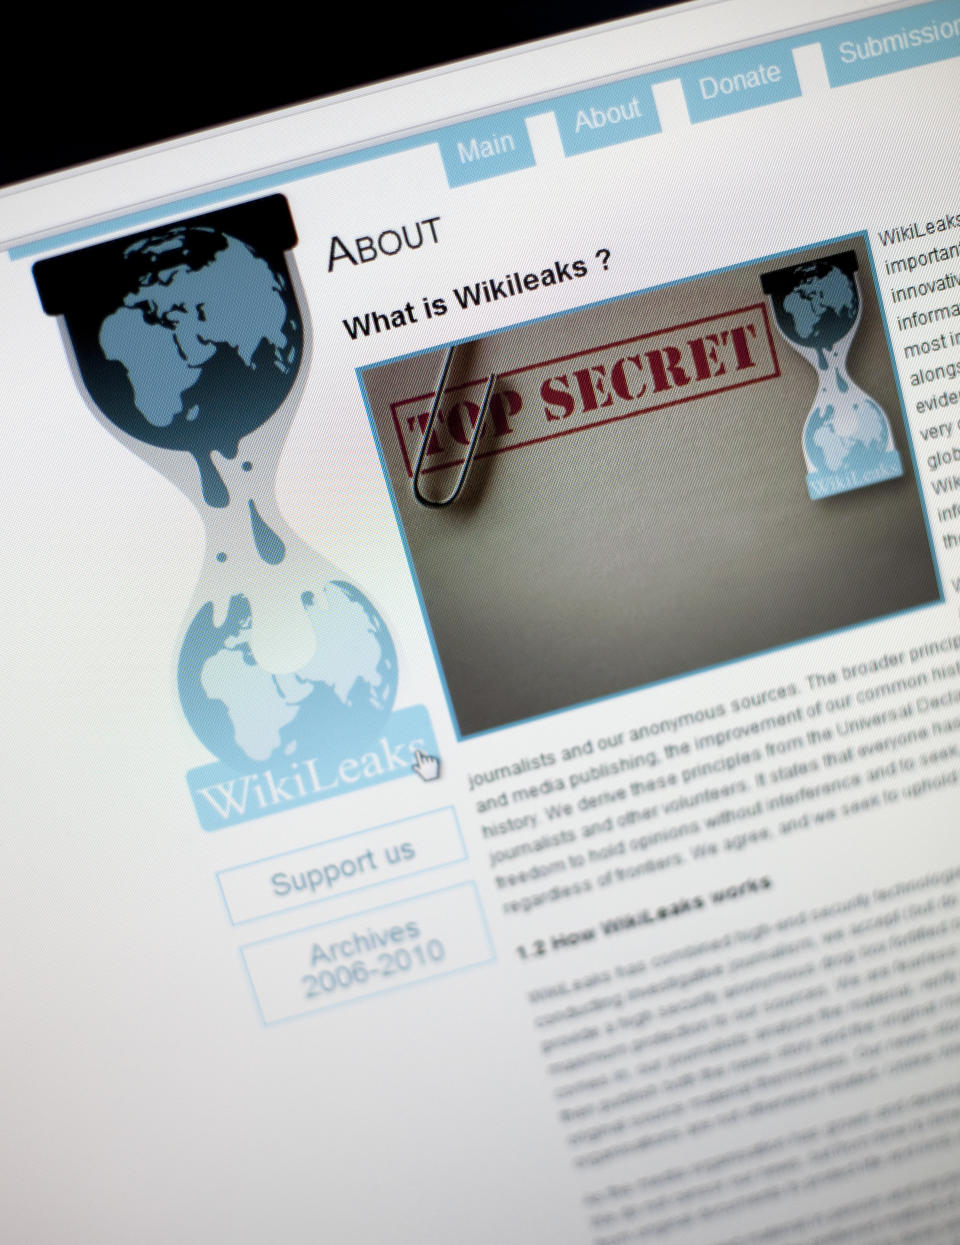 WikiLeaks About page. Source: Getty Images